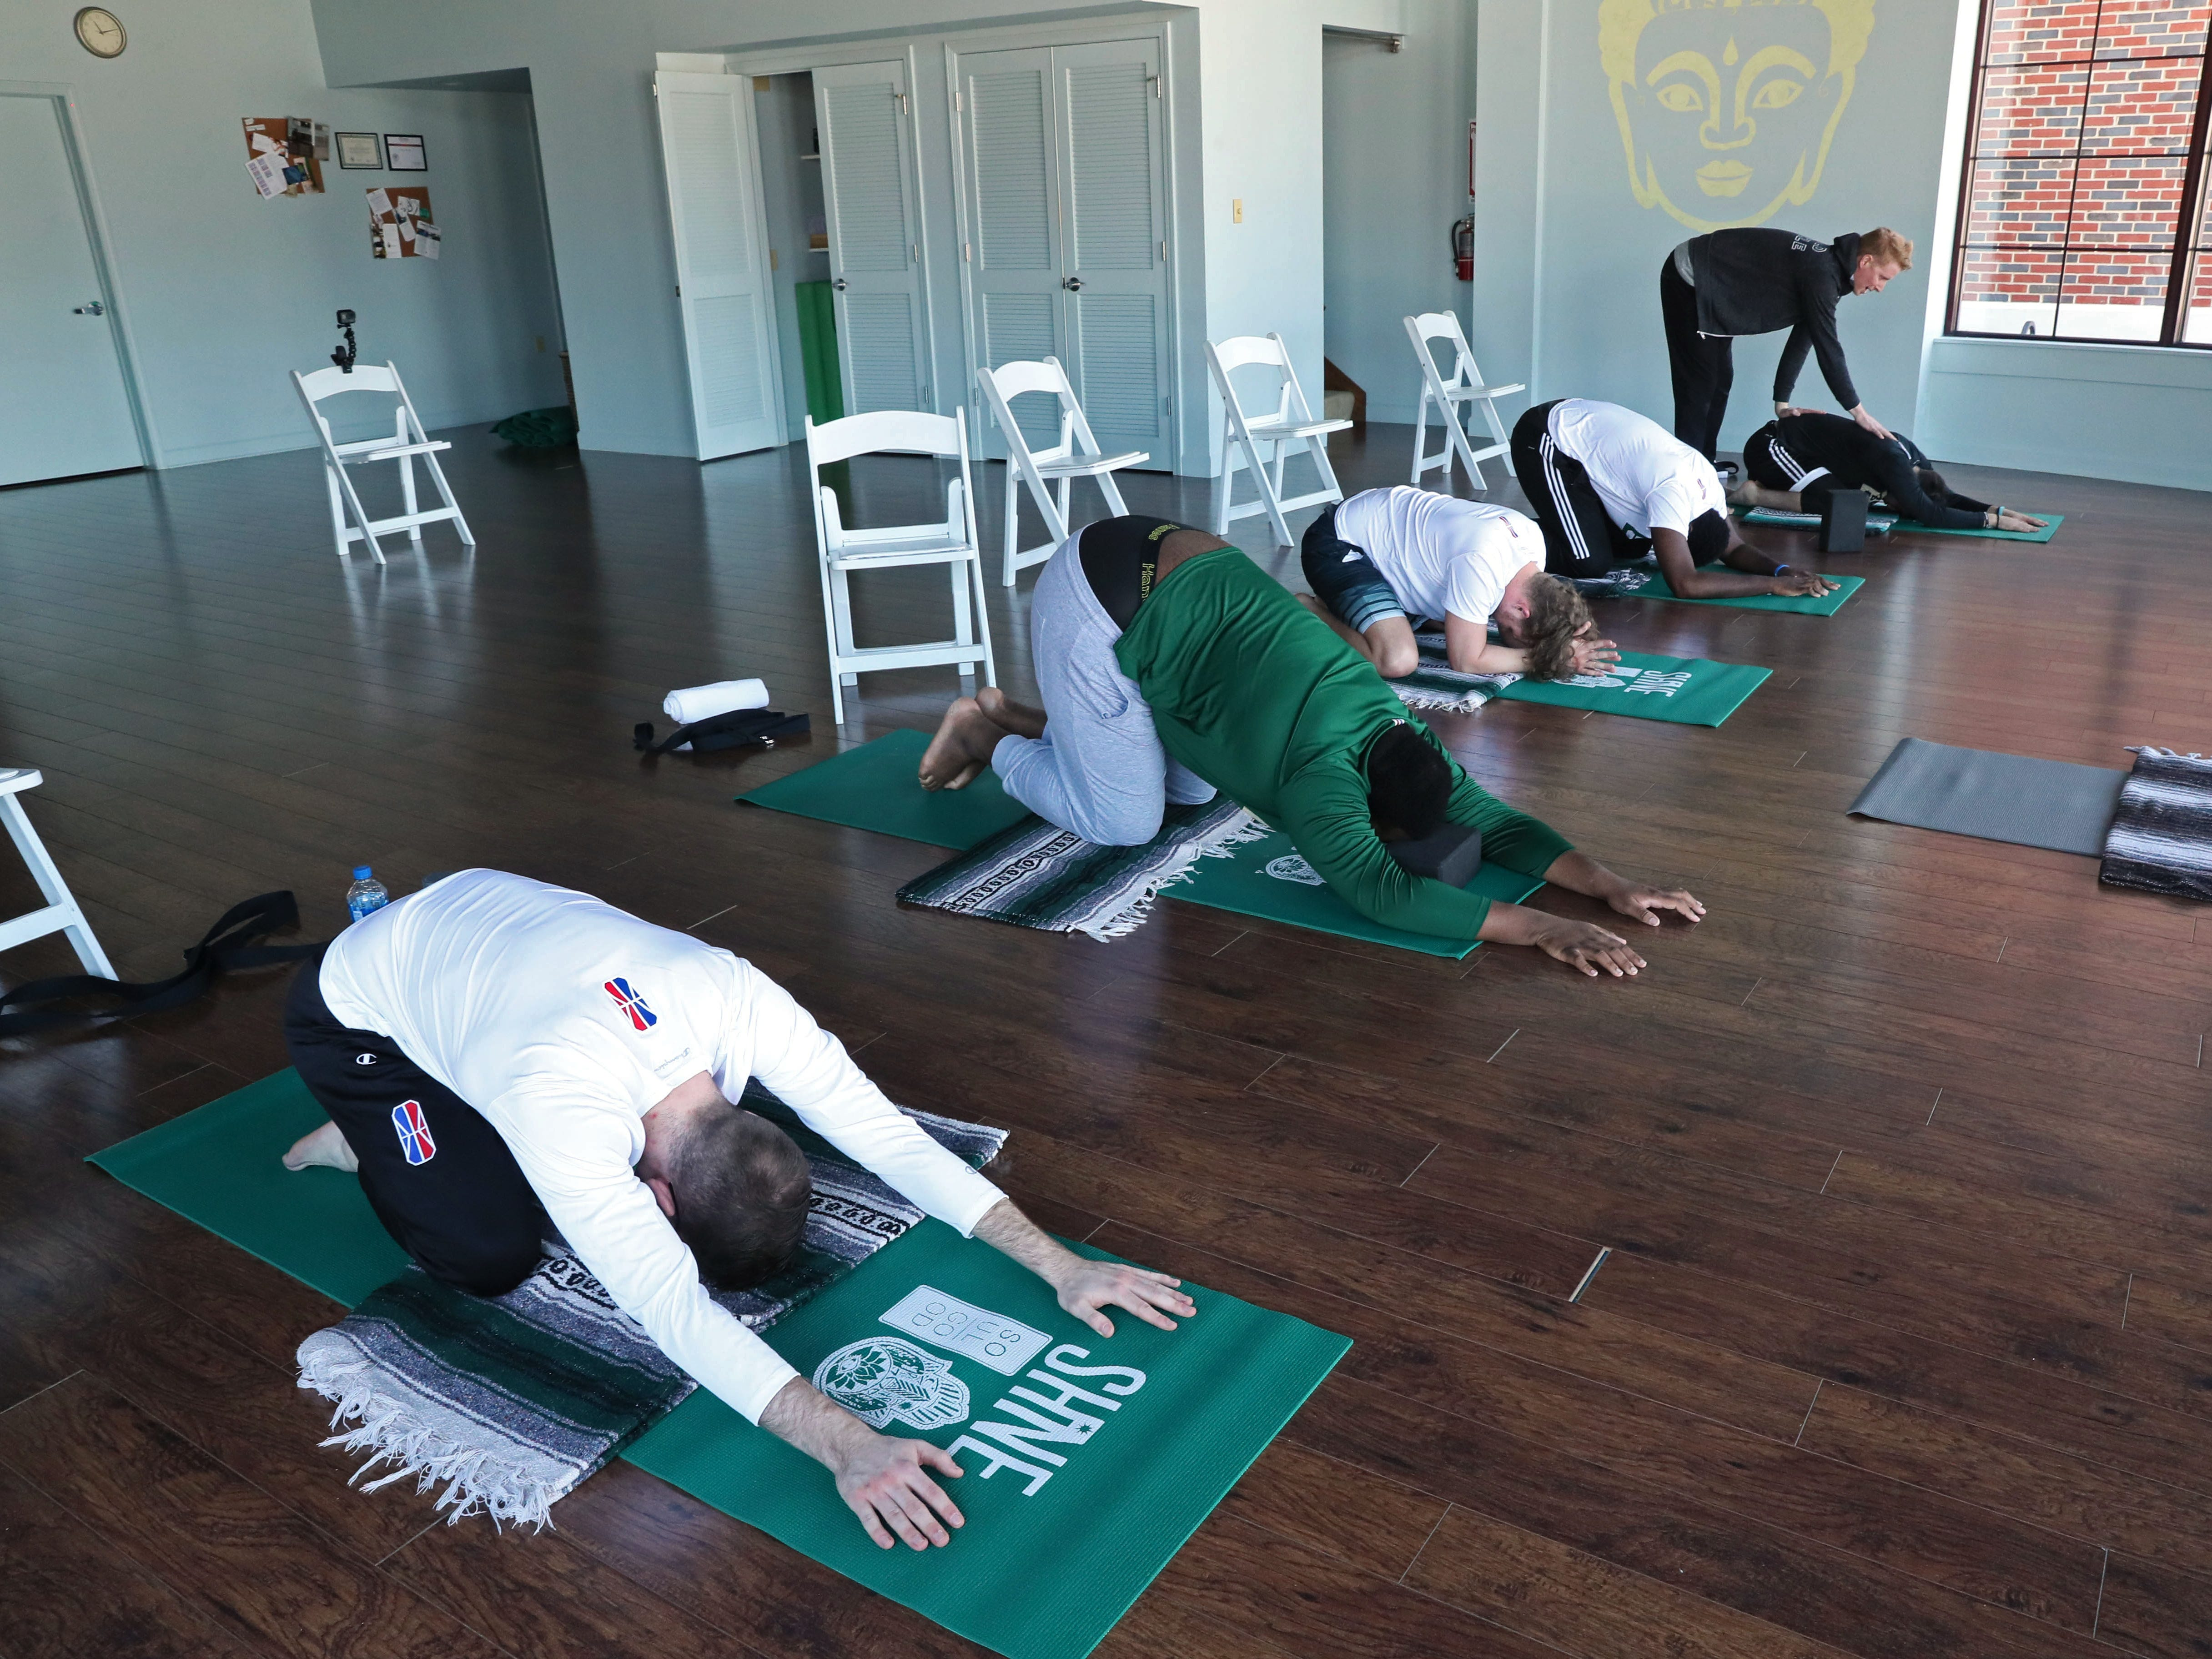 Members of the Bucks Gaming NBA2K team participate in a yoga class at Yoga On The Lake in Kohler as part of a wellness retreat.  Instructor Greg Cartwright teaches them yoga positions and stretches.